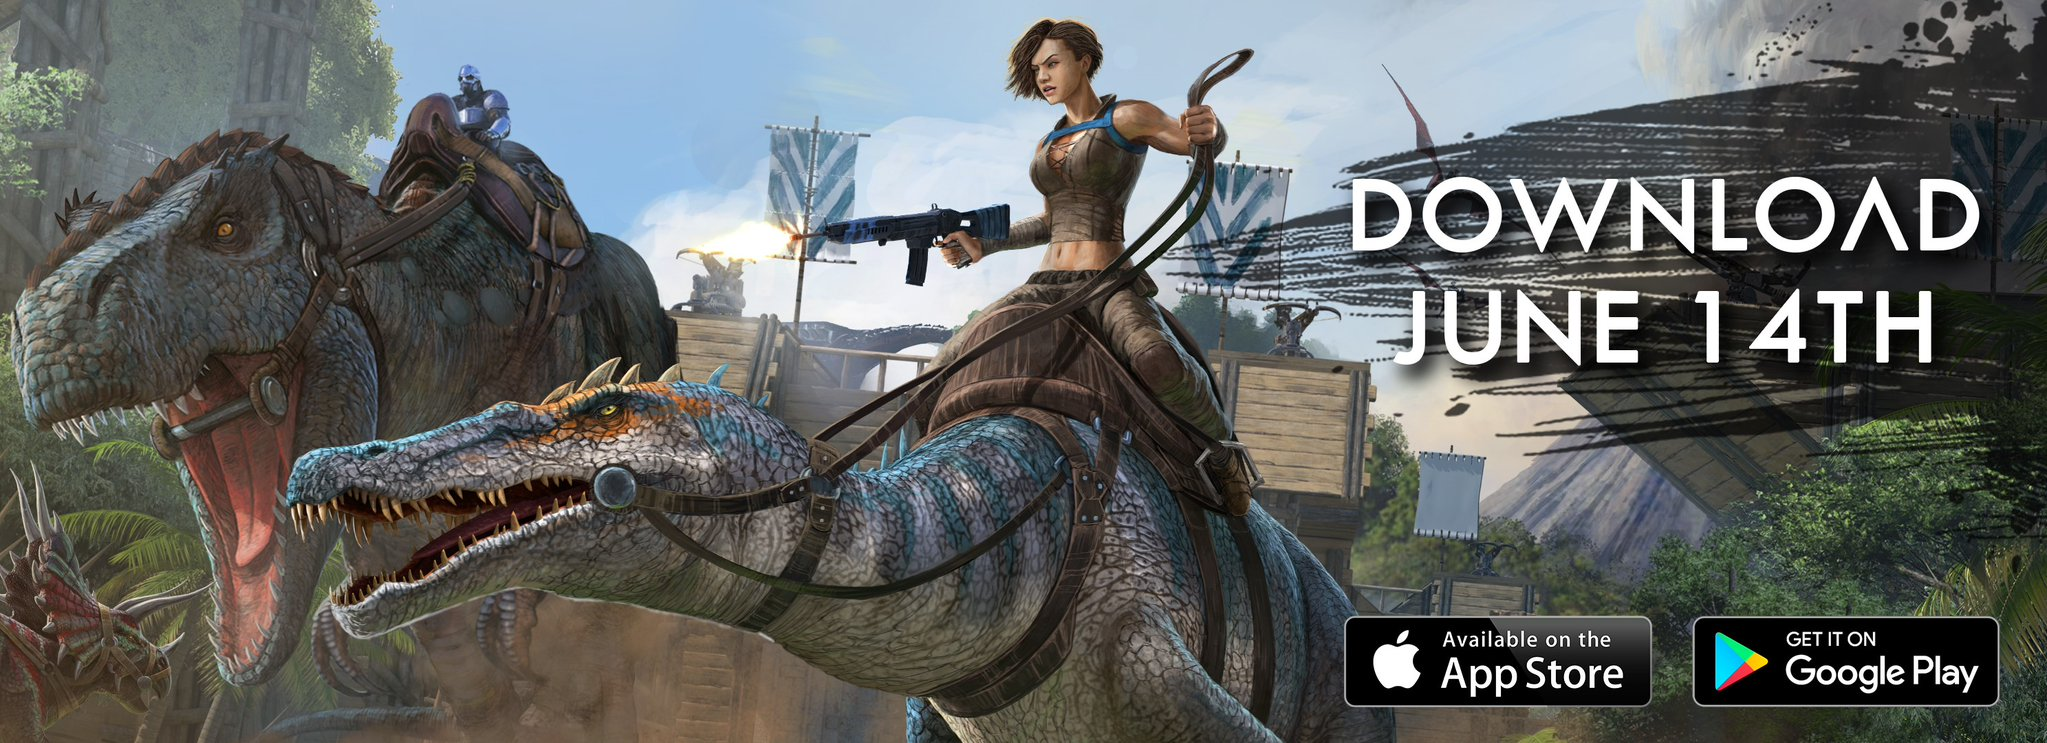 ARK: Survival Evolved mobile features the full online survival experience contained in the PC and console versions of the game